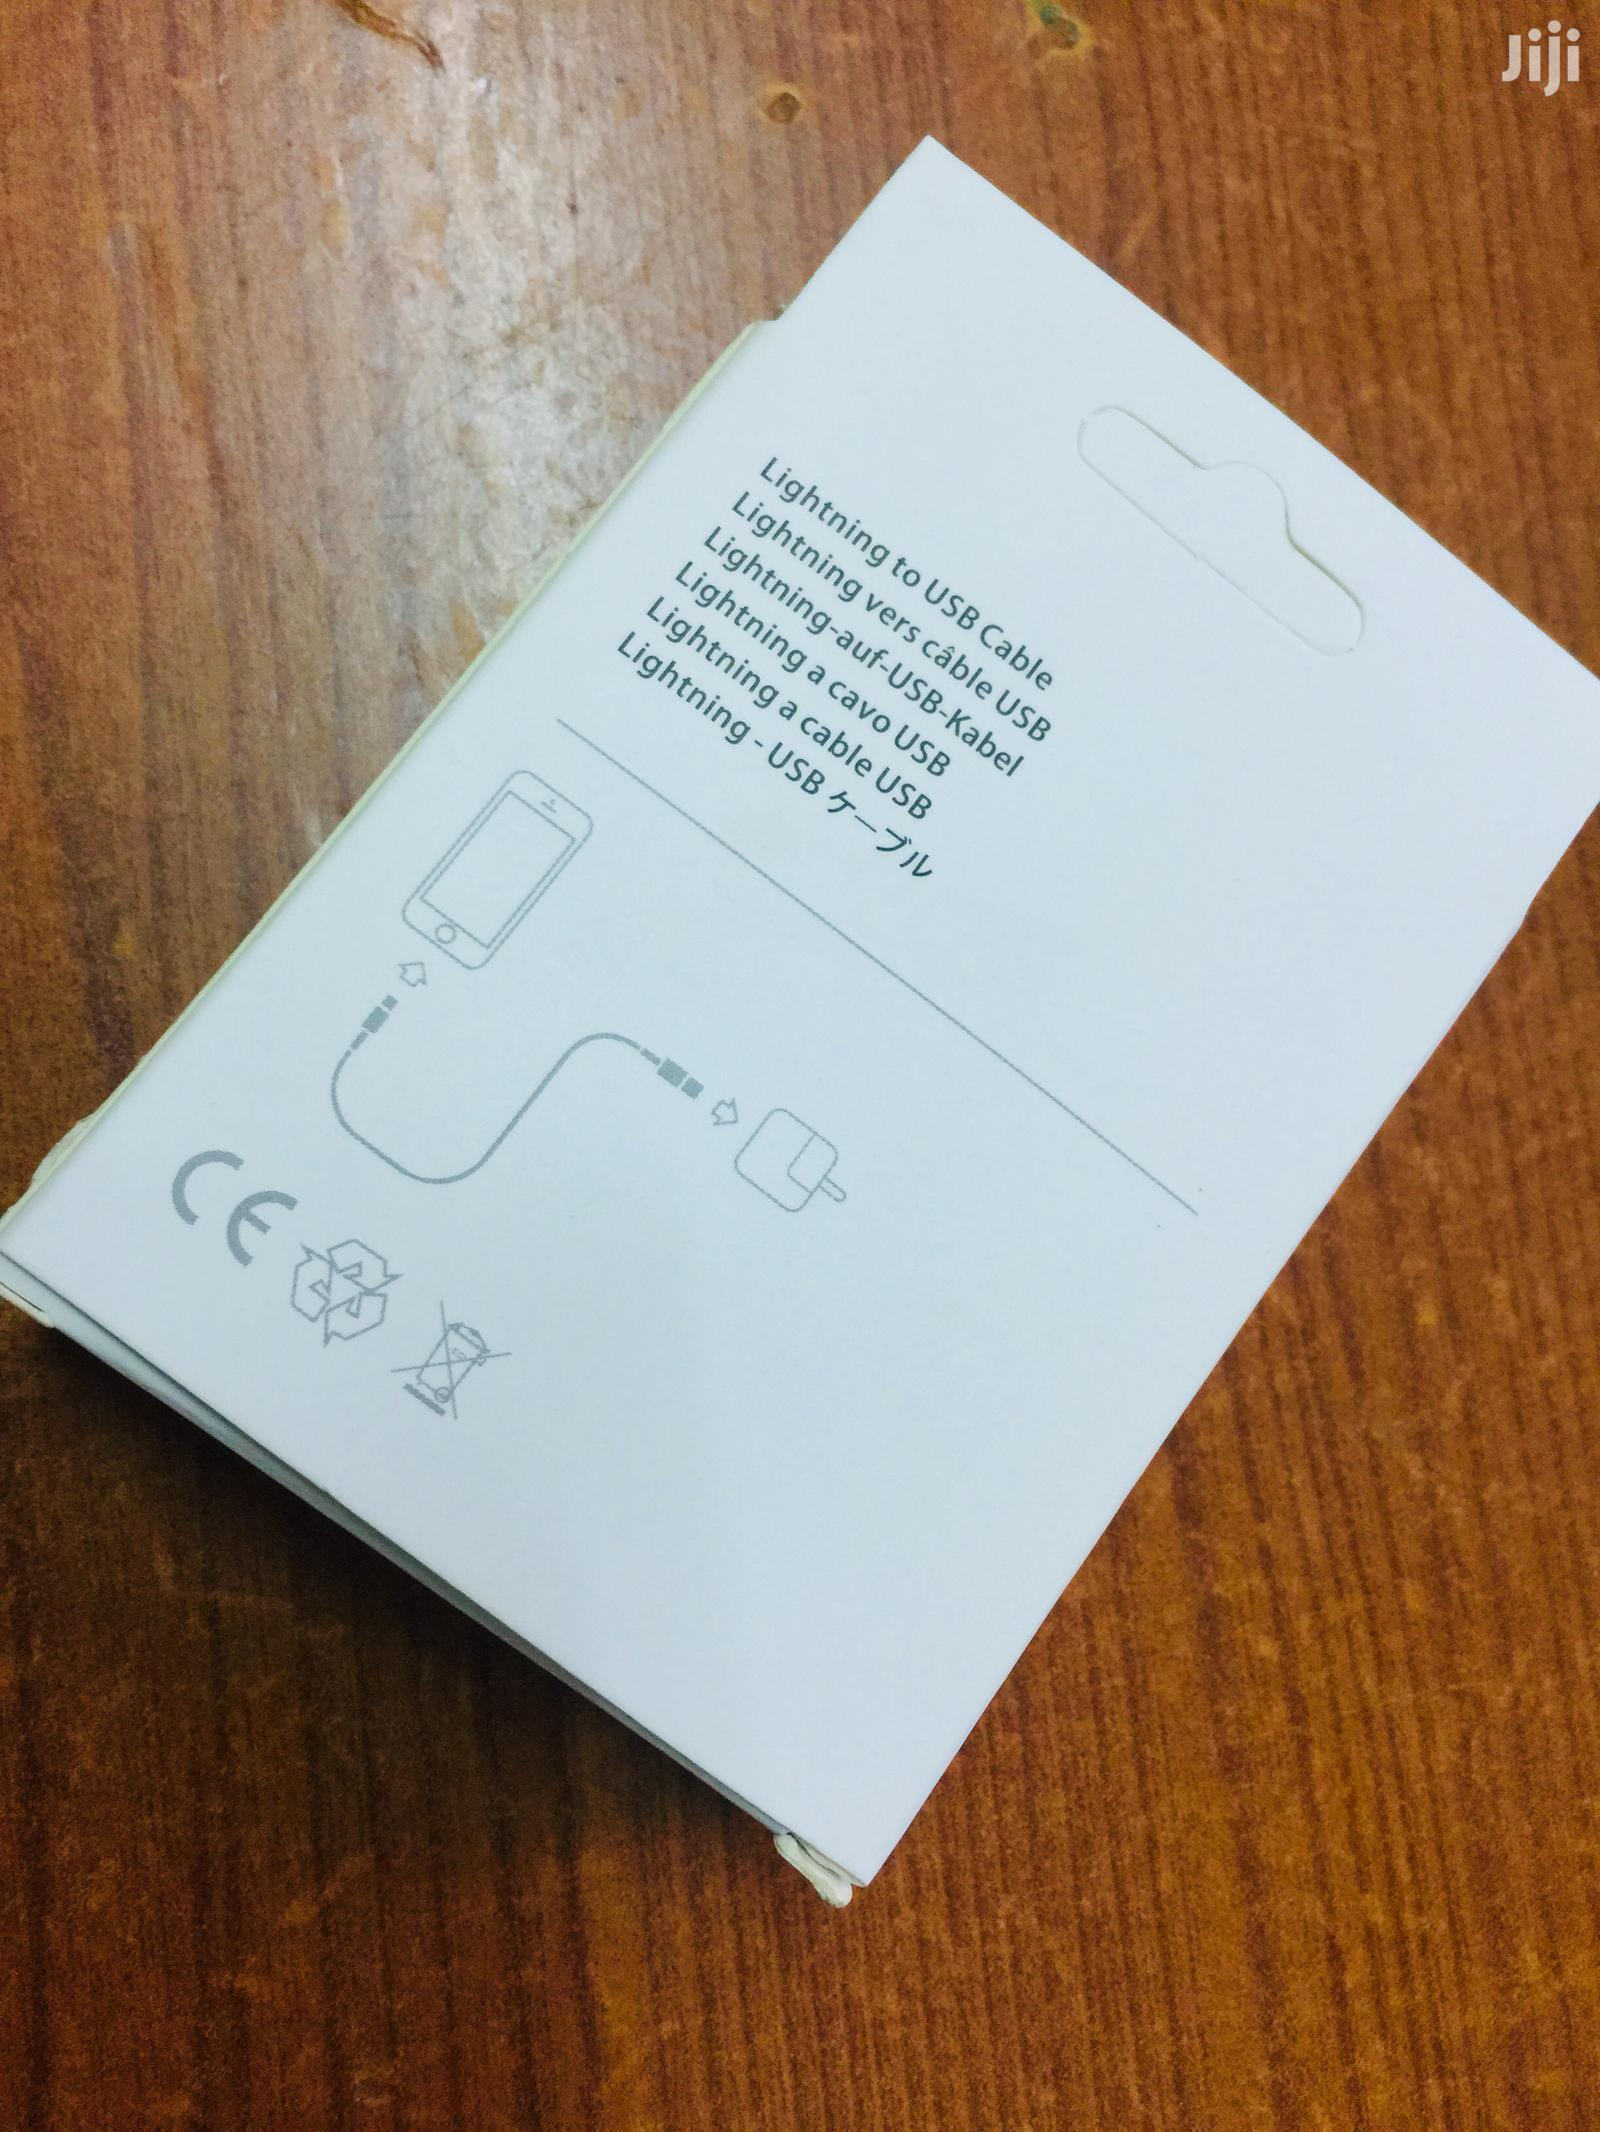 iPhone Usb Charger | Accessories for Mobile Phones & Tablets for sale in Nairobi Central, Nairobi, Kenya